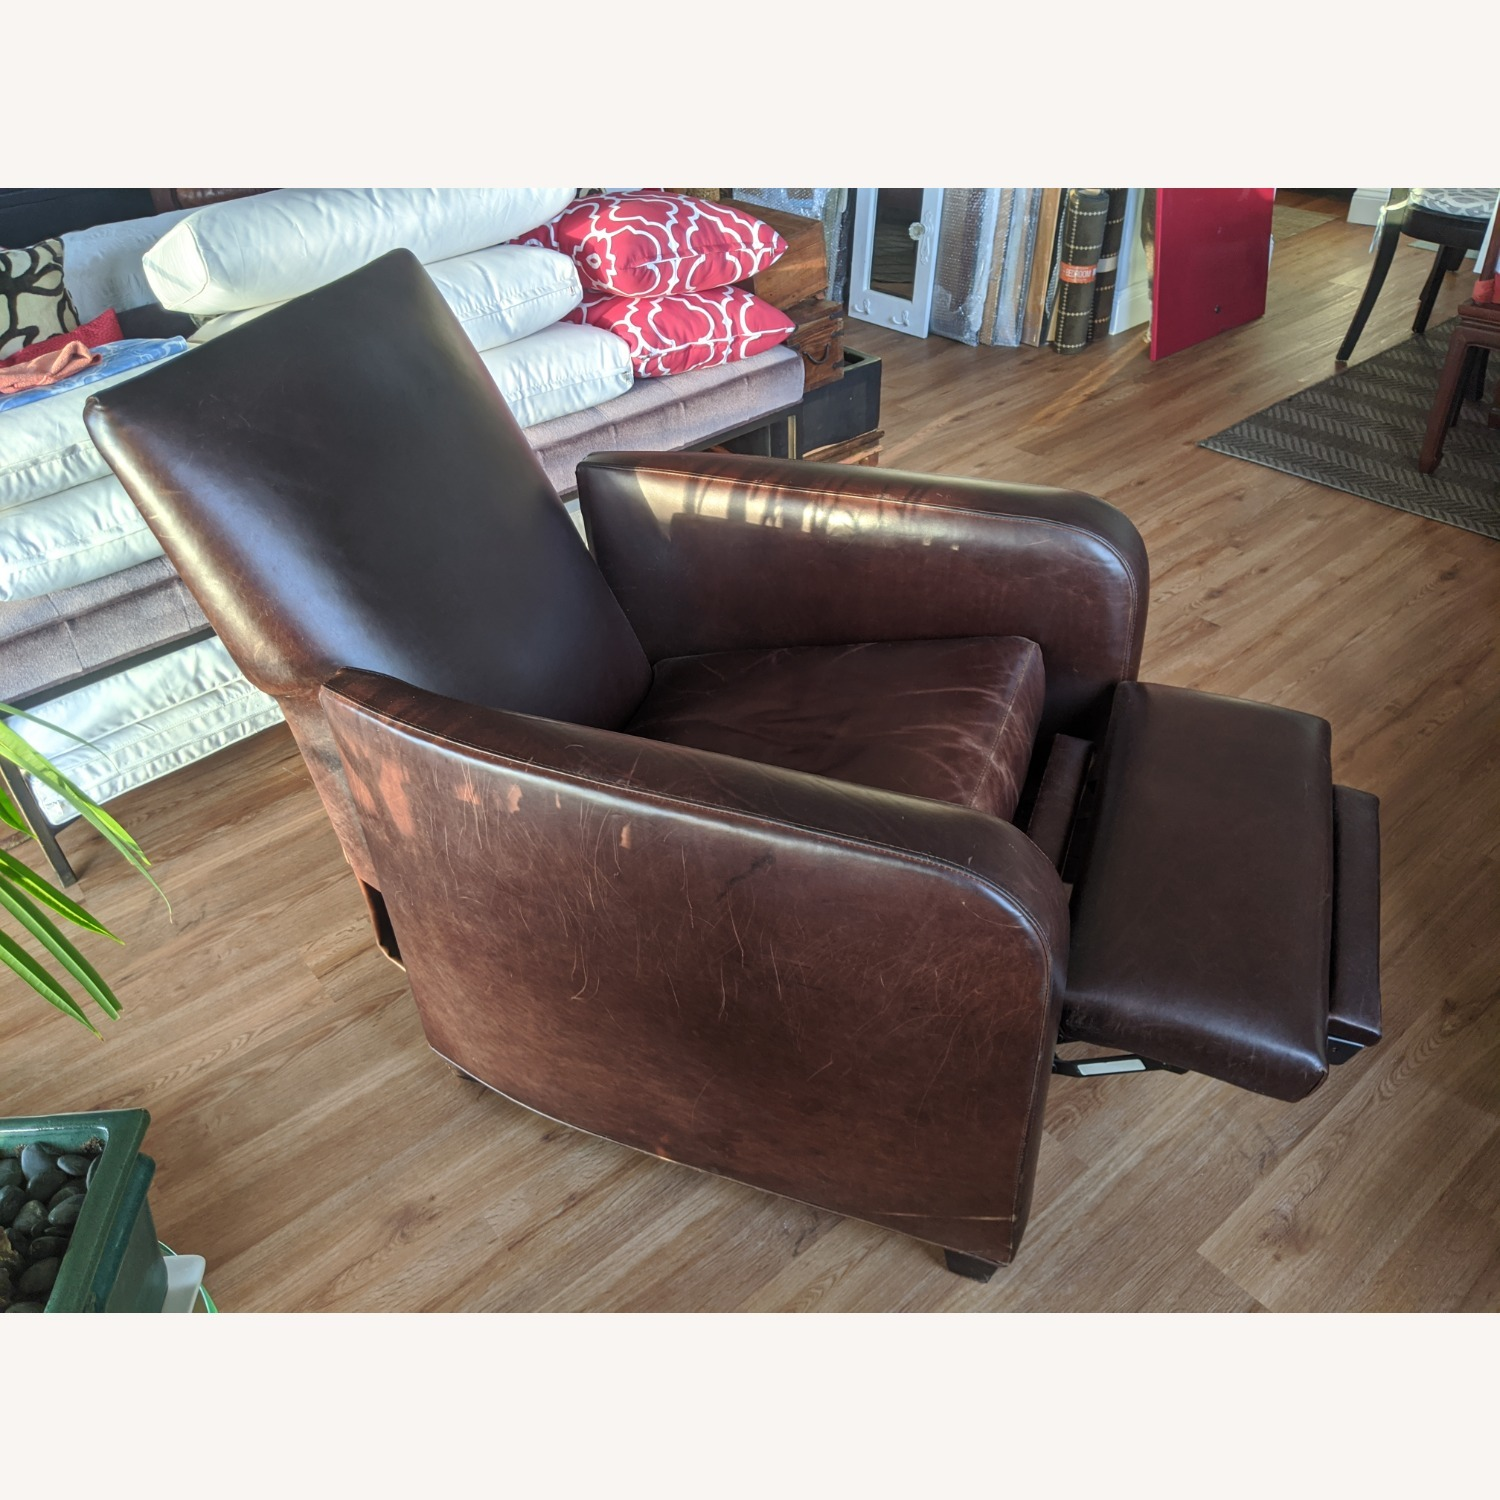 Crate & Barrel Leather Recliner - image-2